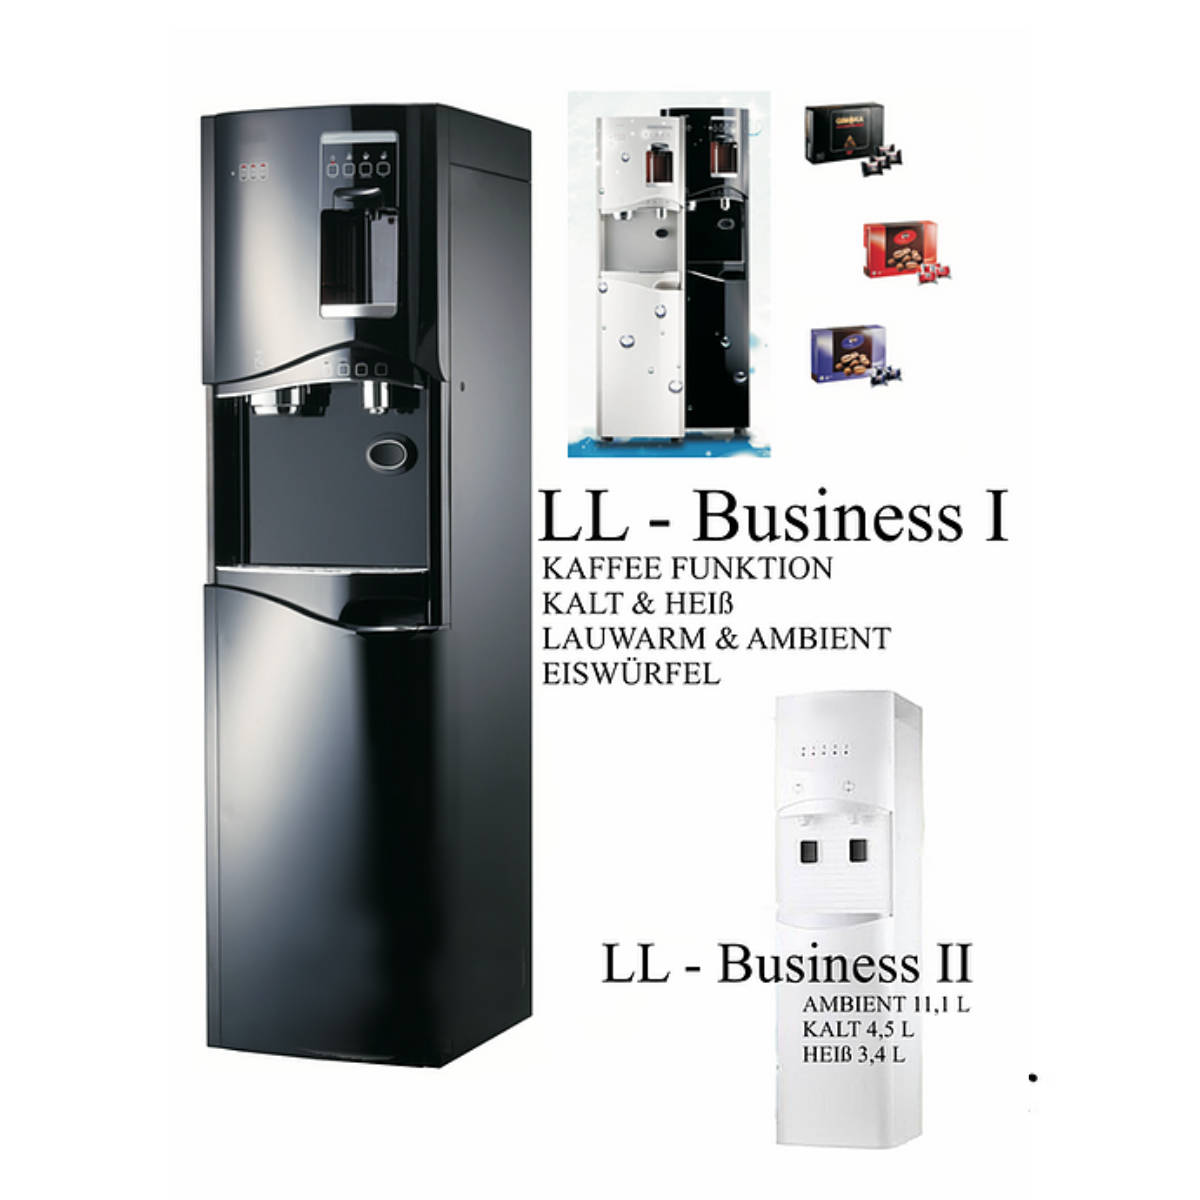 LL-Business